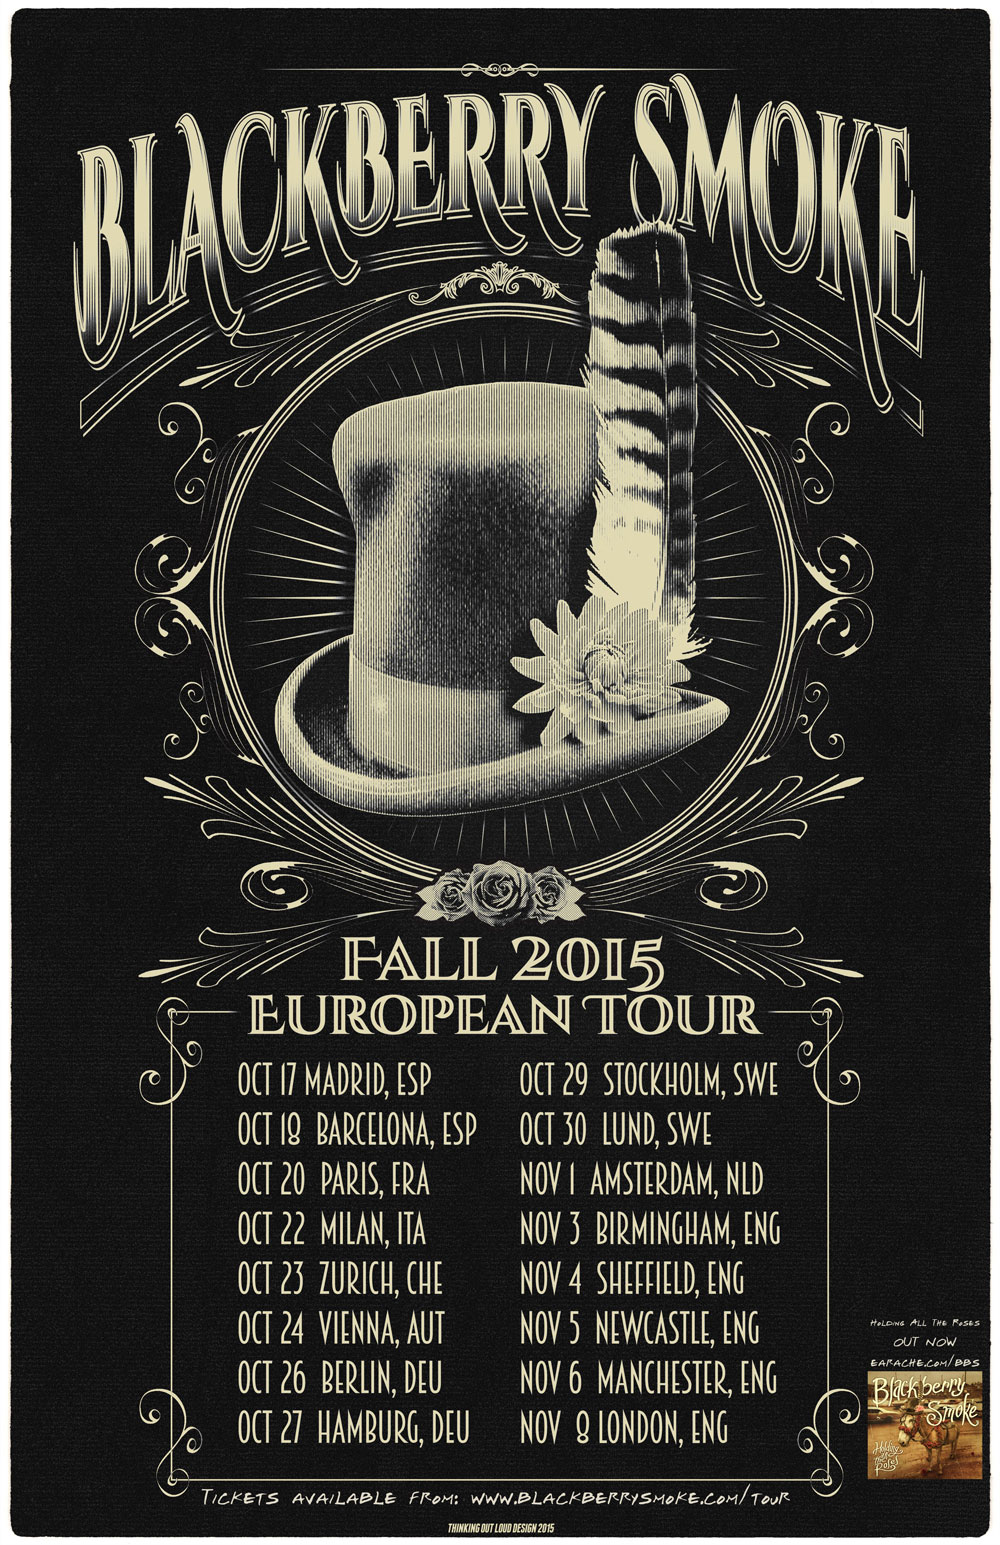 Blackberry Smoke European tour 2015